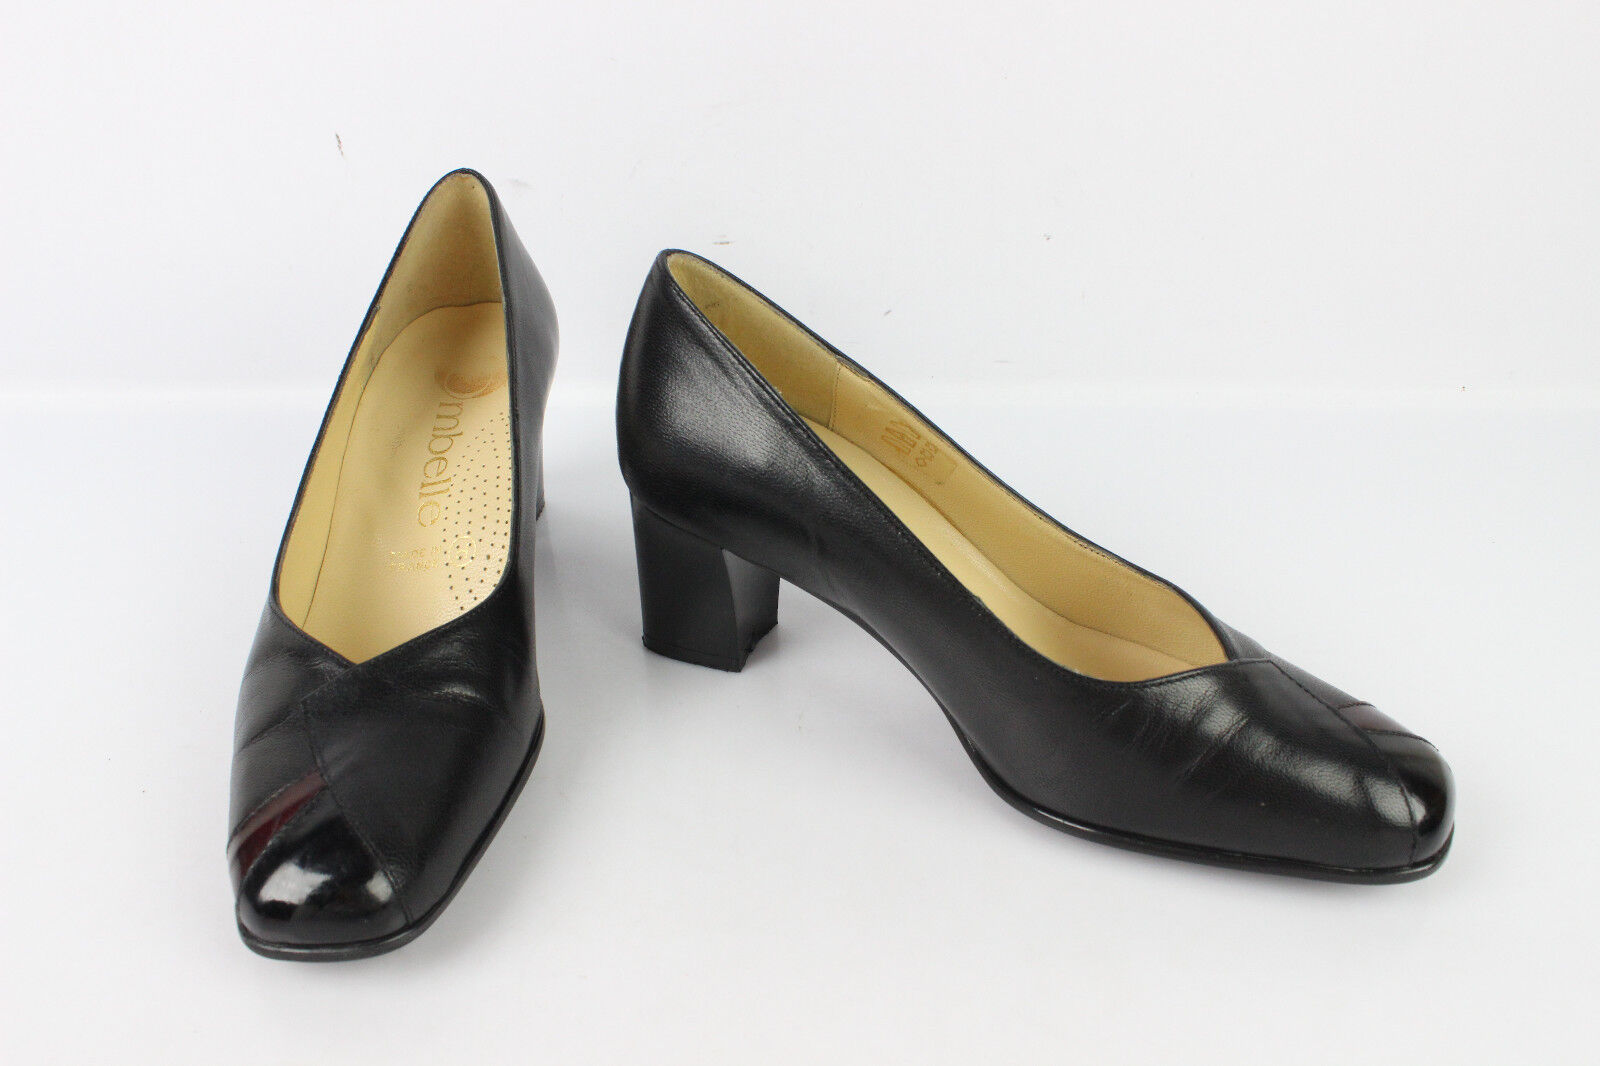 Escarpins OMBELLE Made in France Cuir black T 36 TRES BON ETAT